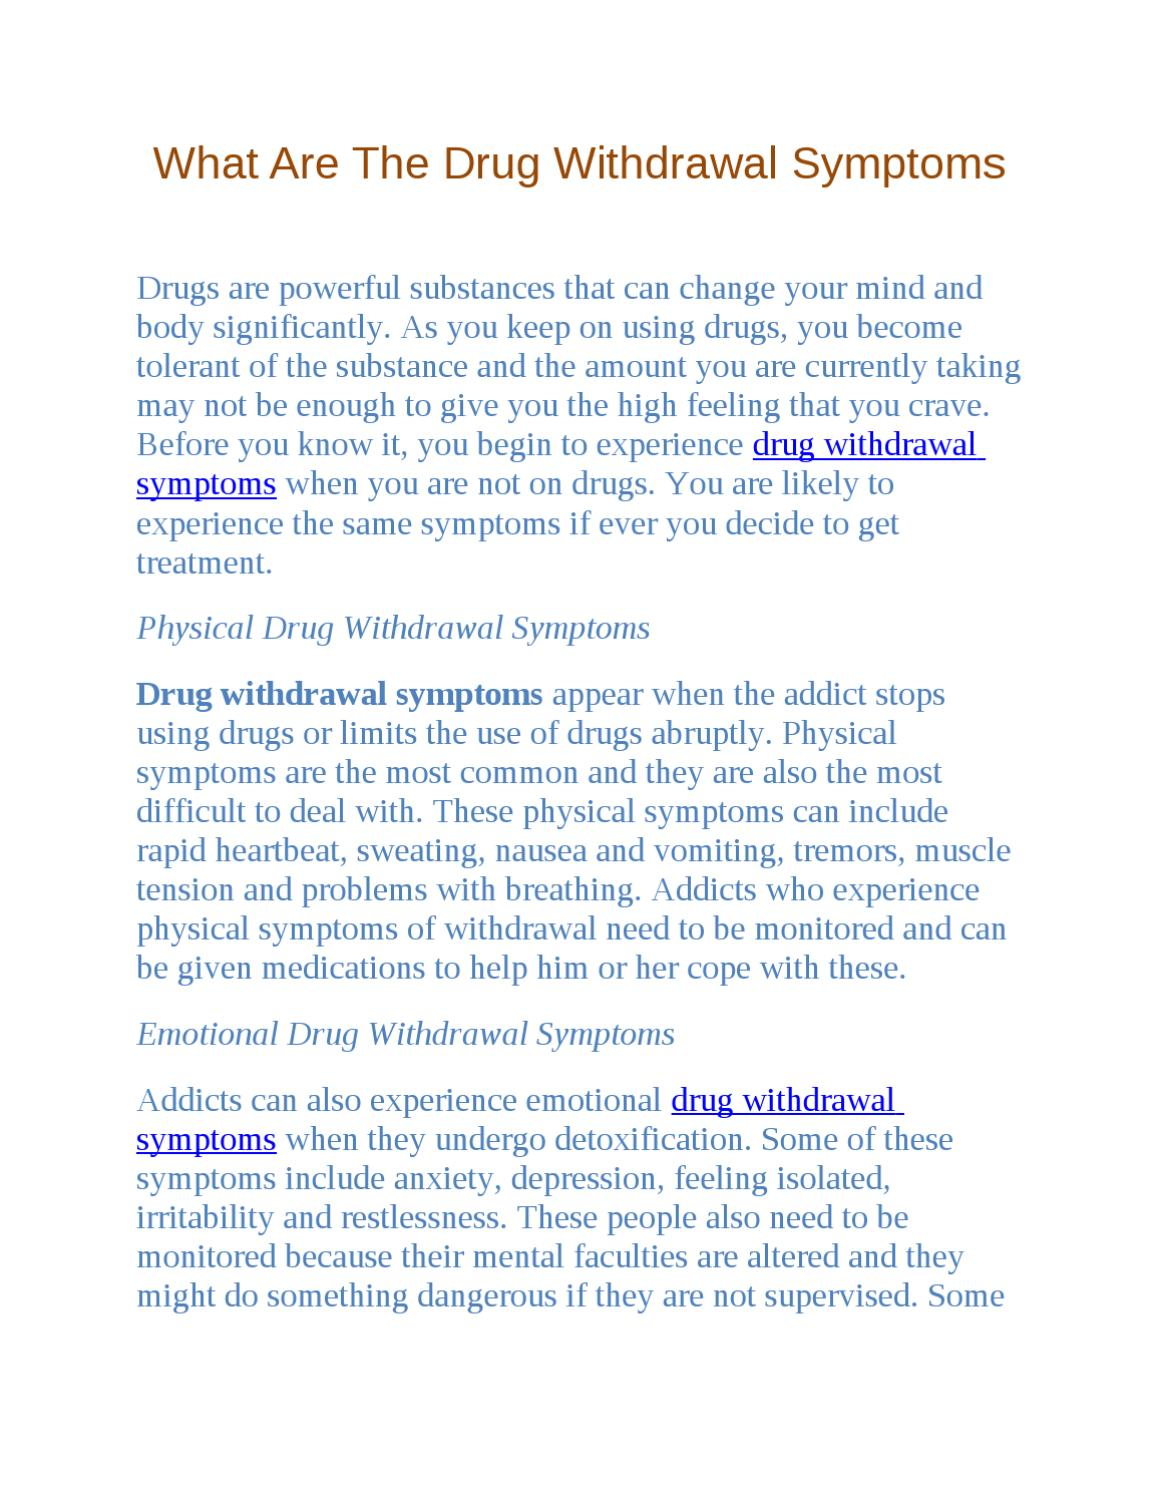 What Are the Drug Withdrawal Symptoms by Sally Middle - issuu